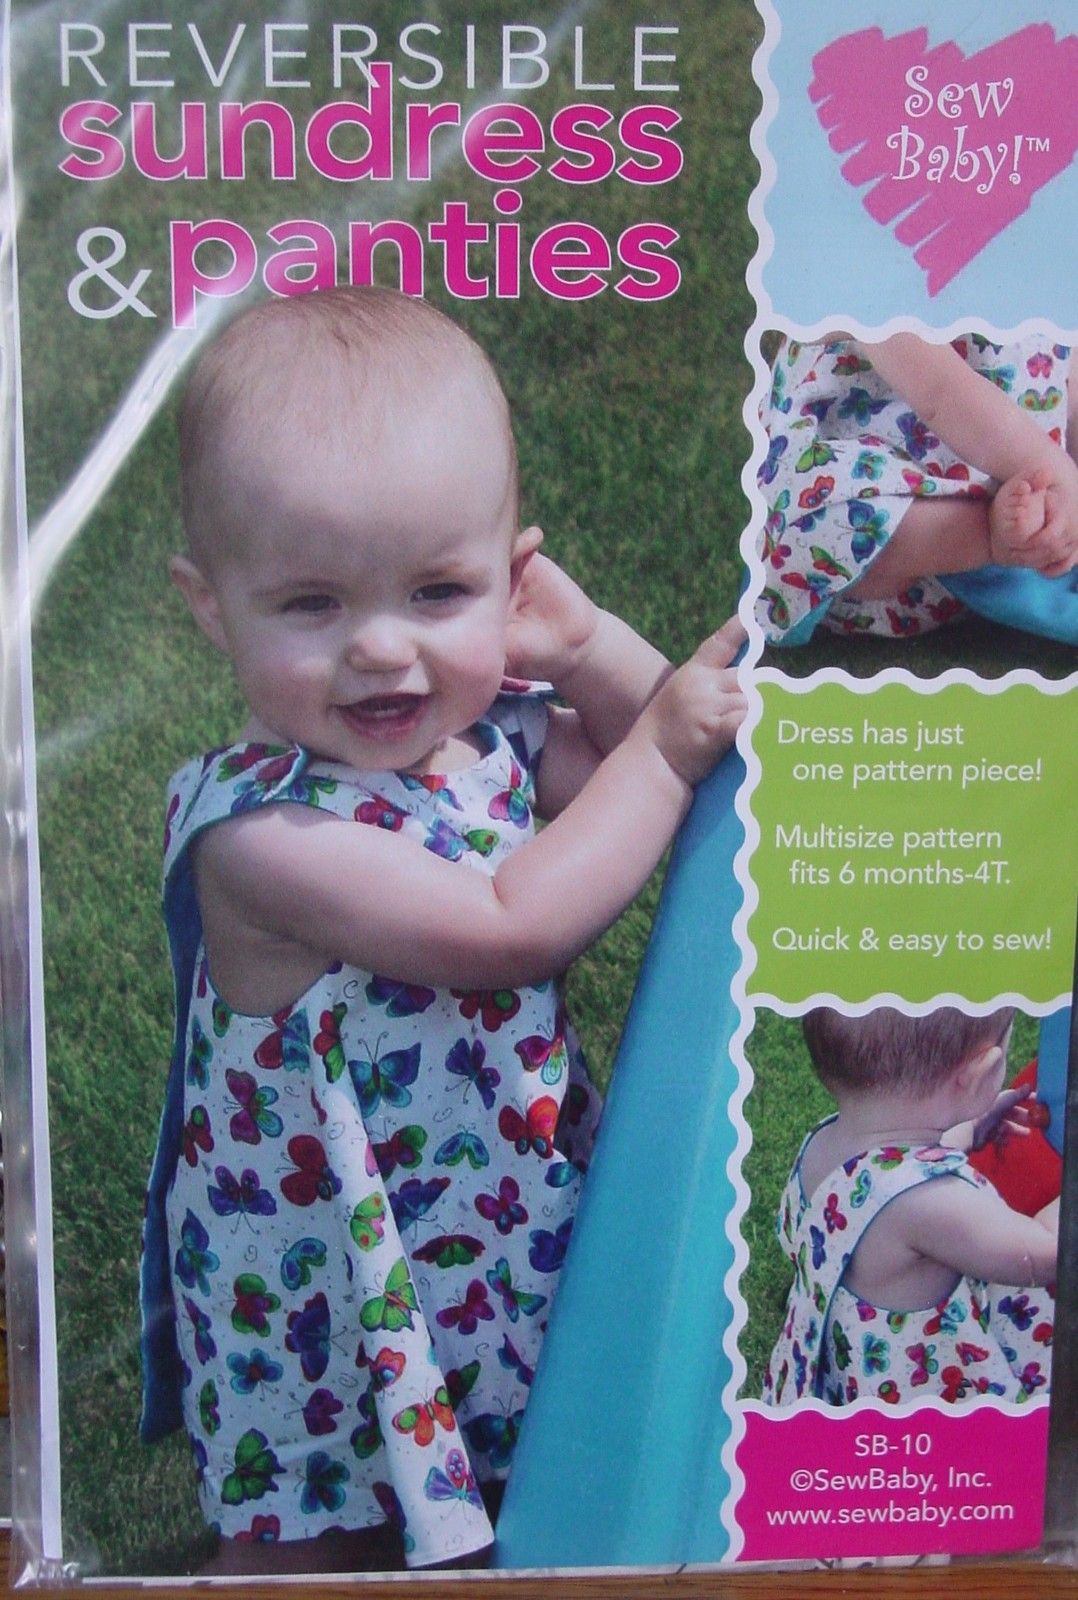 Sewing Pattern One Piece Sundress sizes 6mo-4T Easy! - $5.00